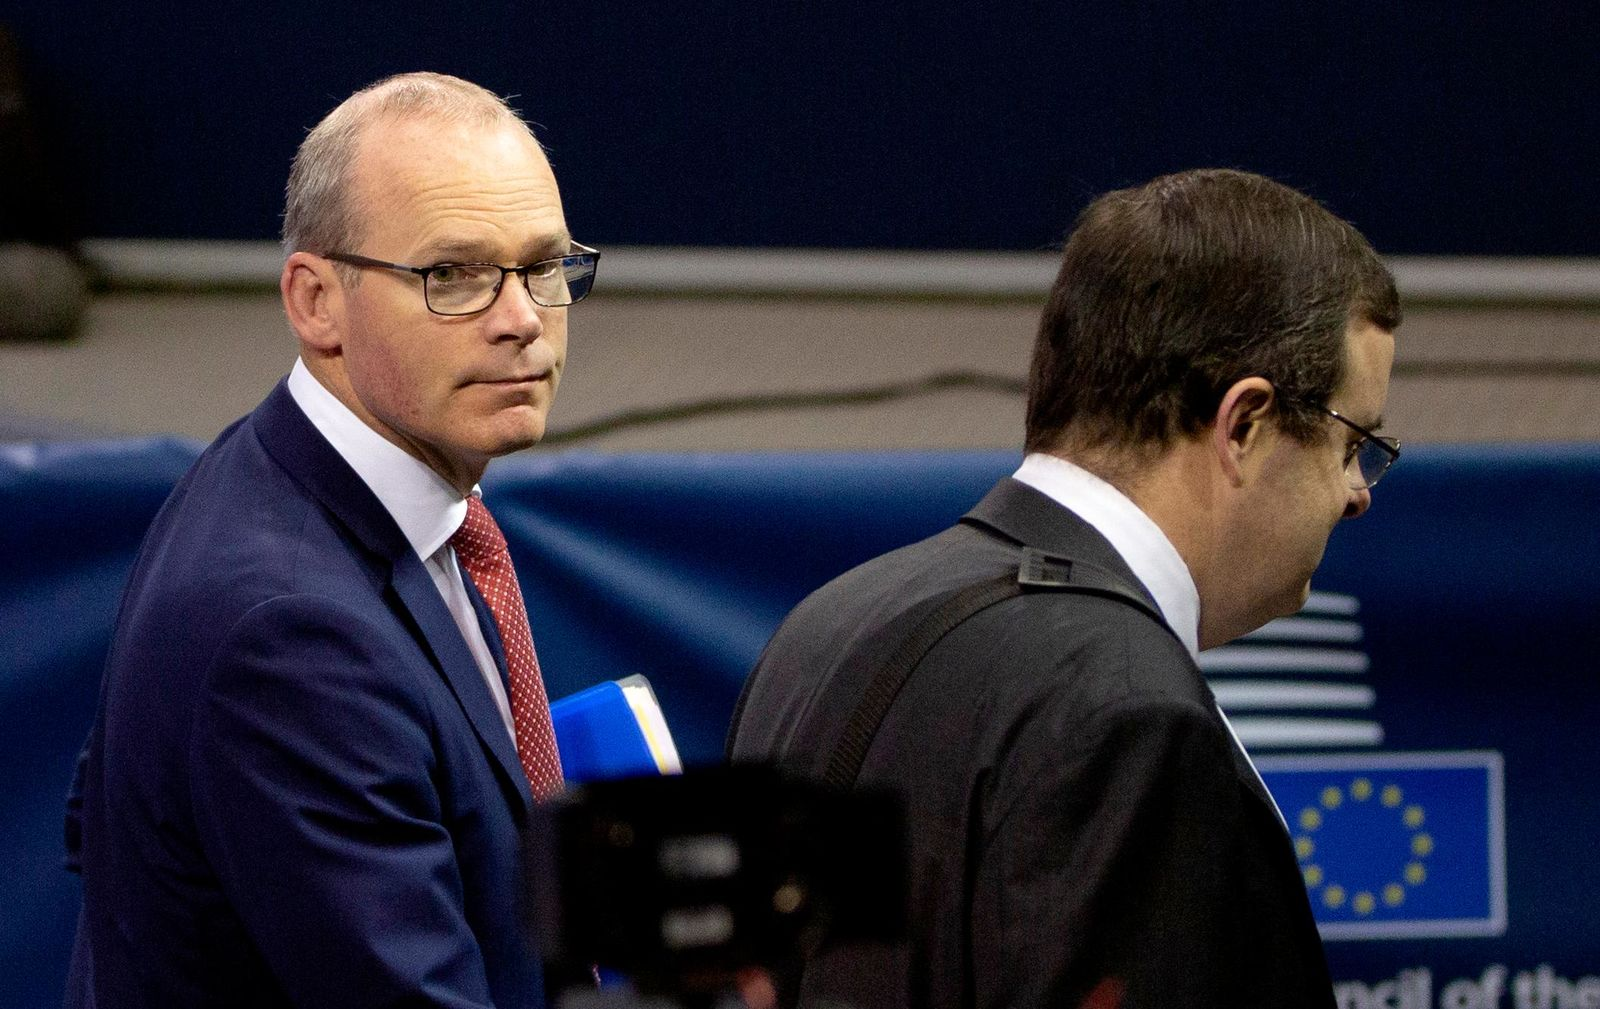 Irish Foreign Minister Simon Coveney, left, arrives for a meeting of EU foreign ministers at the European Convention Center in Luxembourg, Monday, Oct. 14, 2019.{ } (AP Photo/Virginia Mayo)